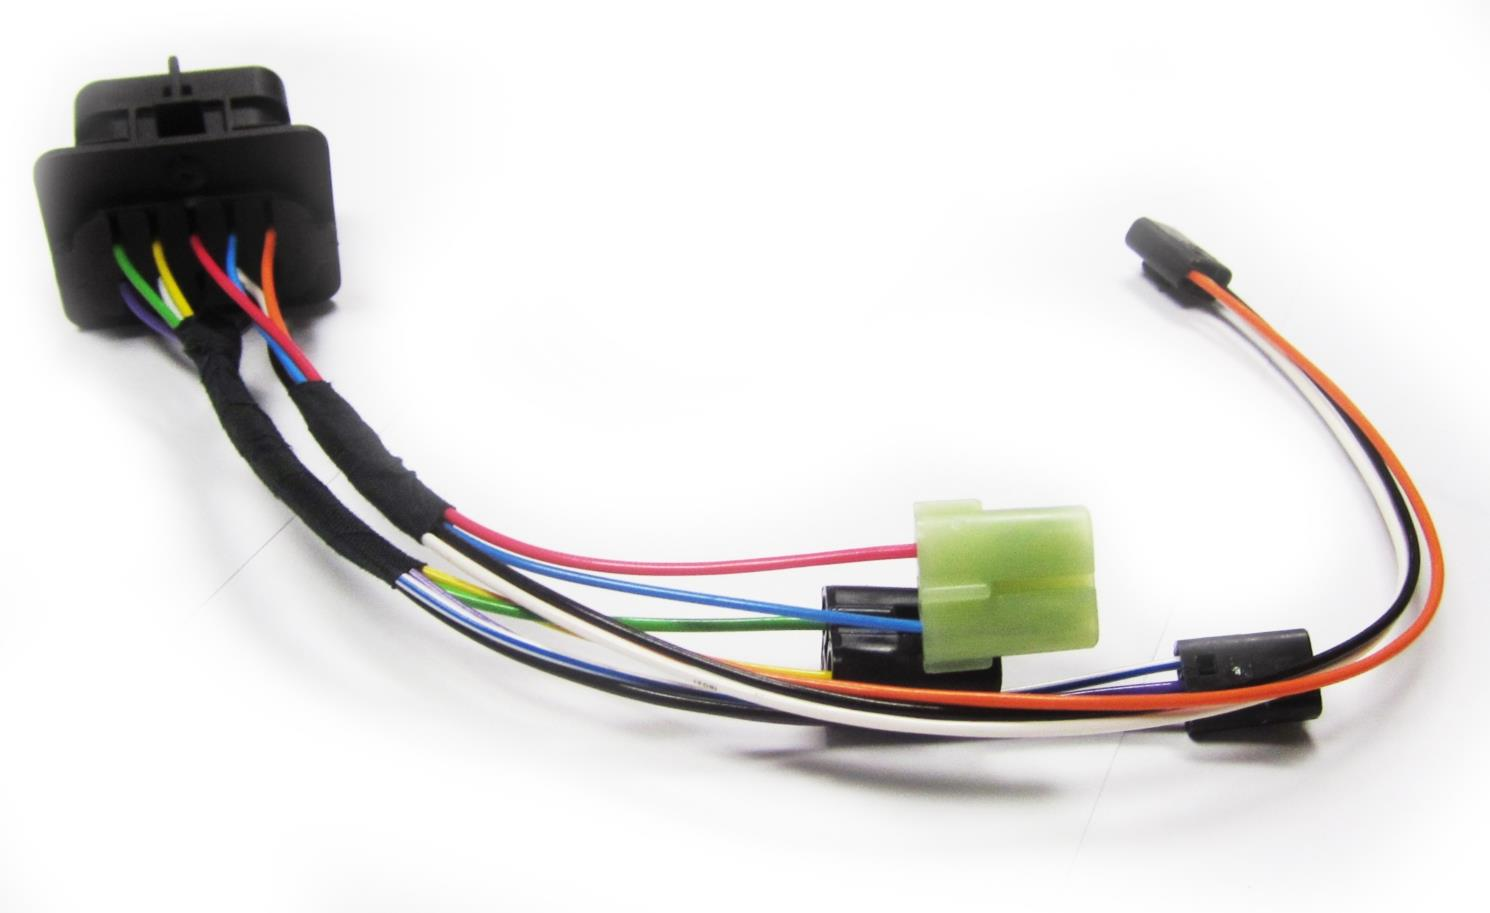 new oem buick regal headlamp socket and wire harness 12455566 ebay Fuel Pump Wiring Harness Diagram  Chevy Wiring Harness Diagram Olds Wiring Harness Lifan Wiring Harness